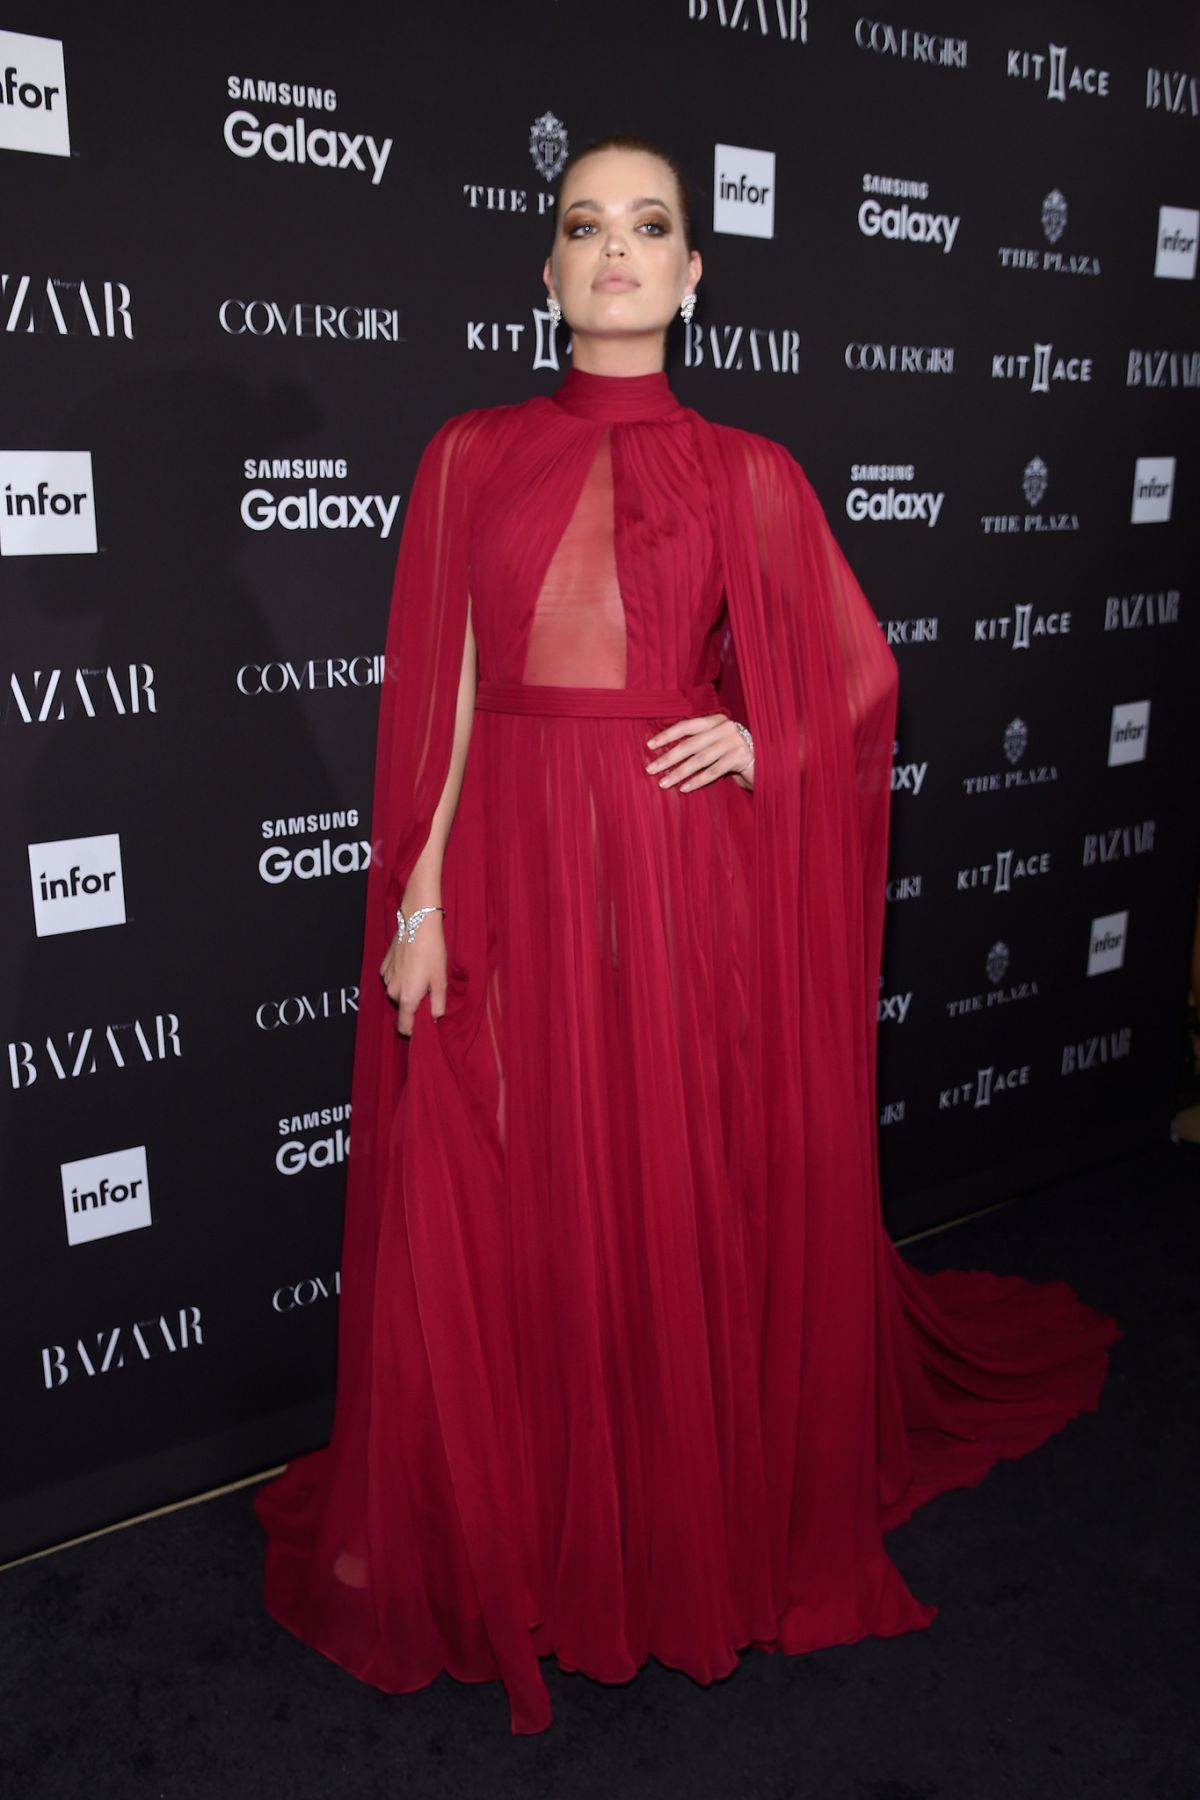 DAPHNE GROENEVELD at 2015 Harper's Bazaar Icons Event in New York 09/16/2015